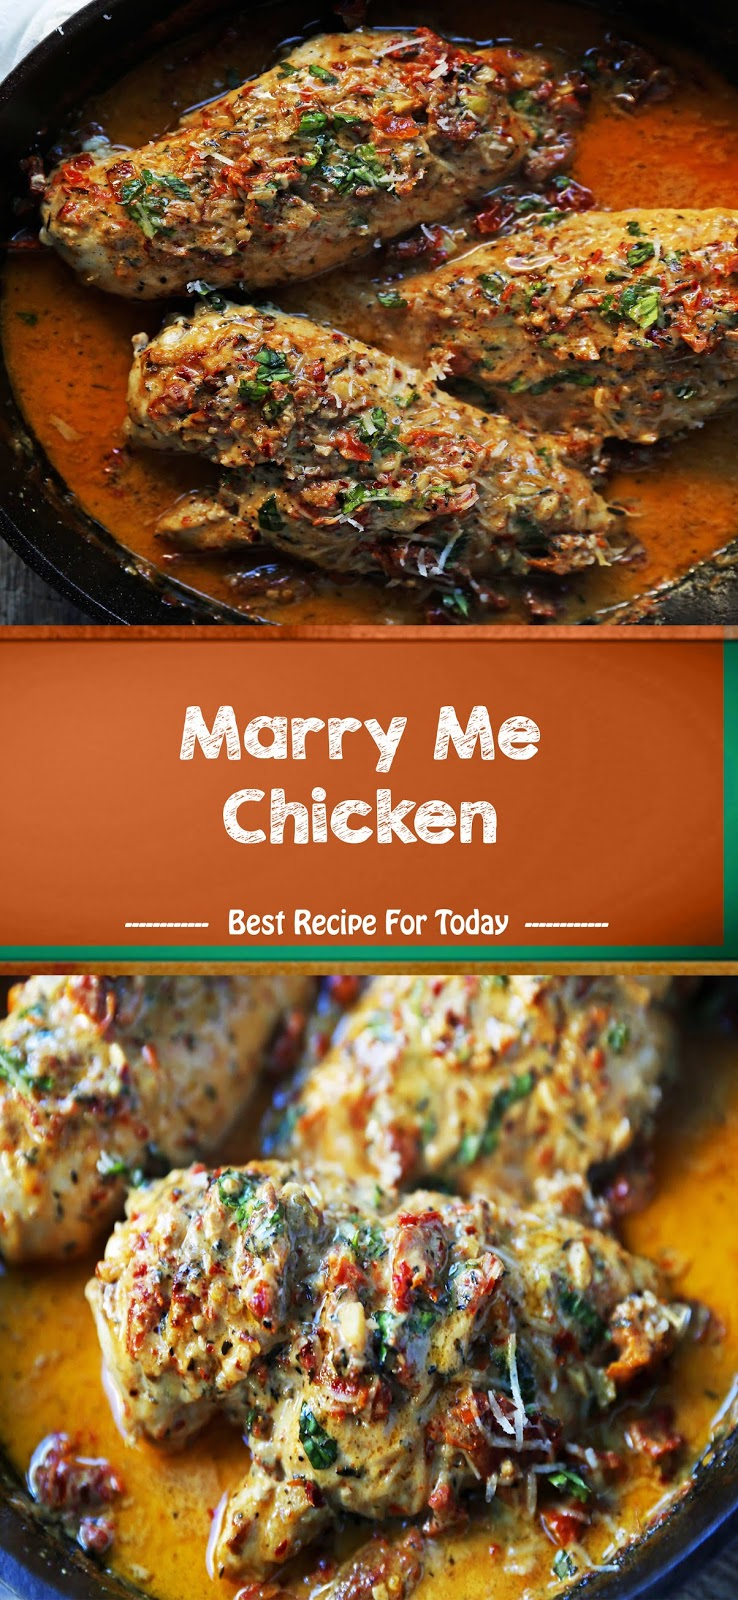 Marry Me Chicken | Healthy Recipes #marrymechicken